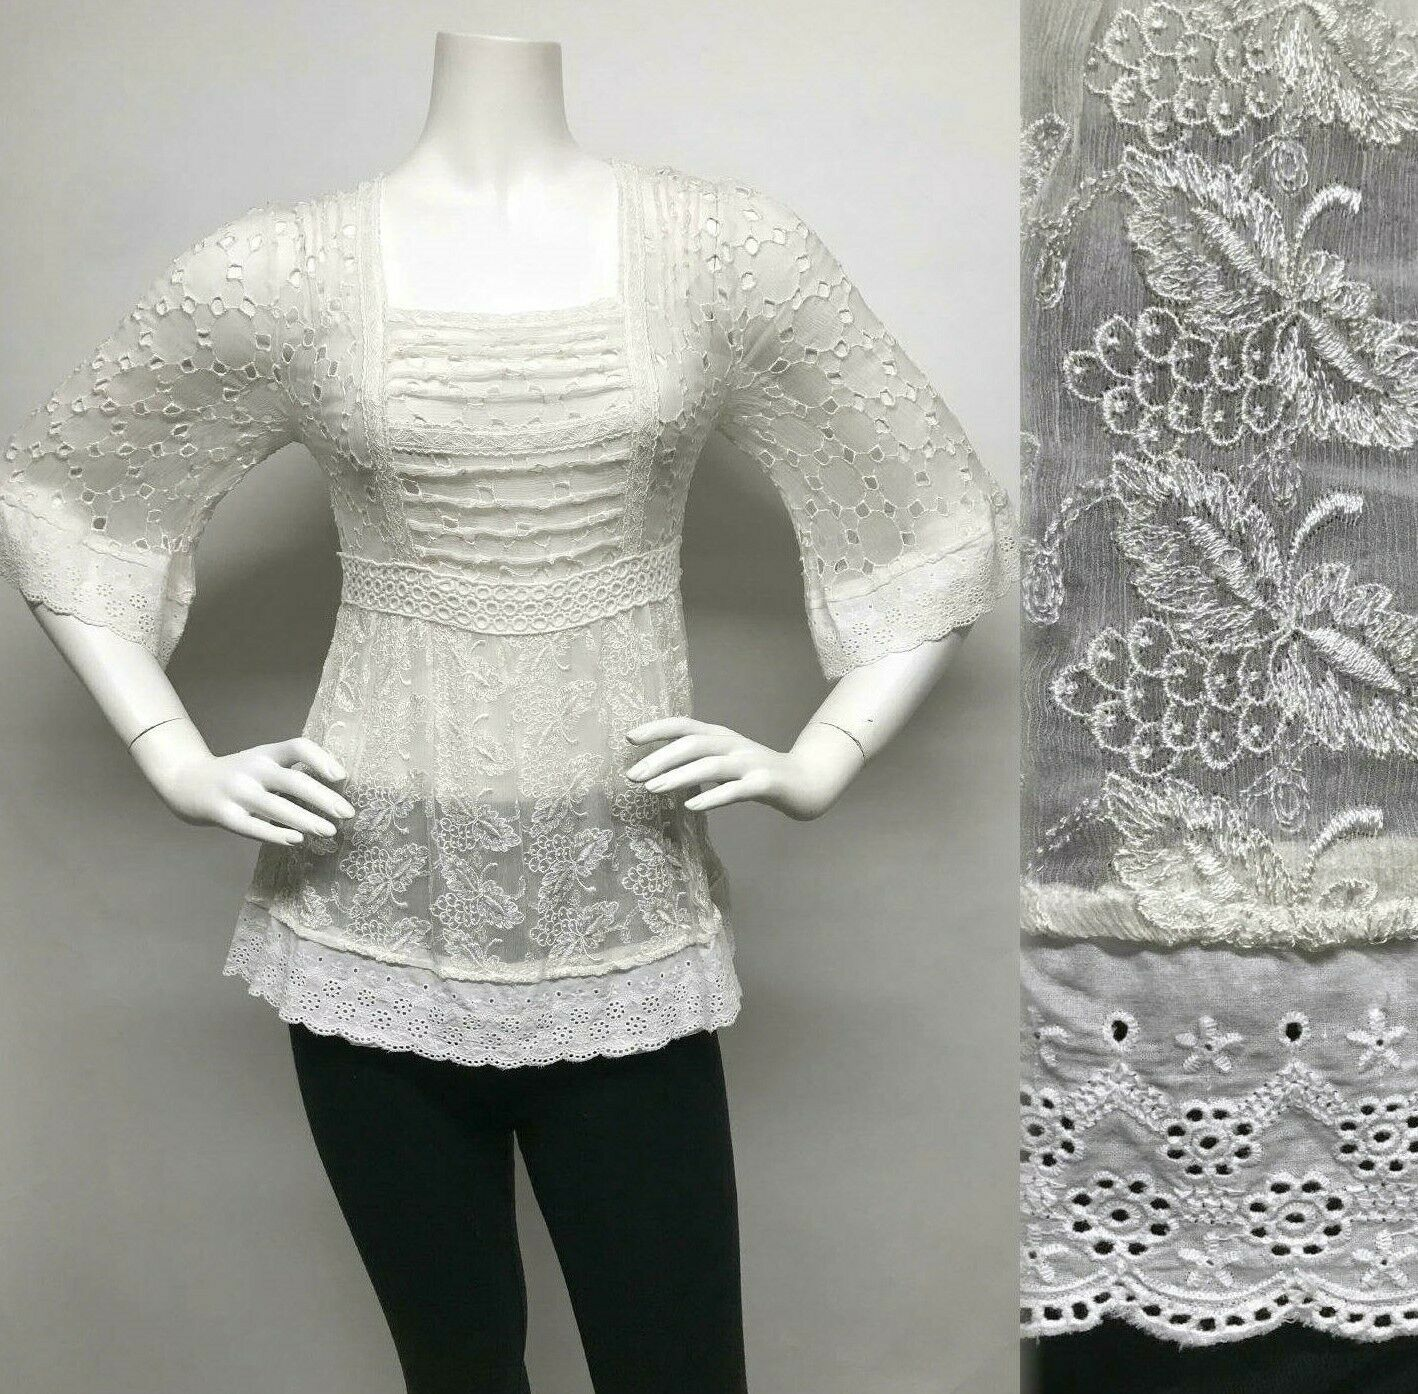 SUNDANCE CATALOG Embroiderot 100% SILK Blouse Top & Slip EYELET LACE Cut-Outs S